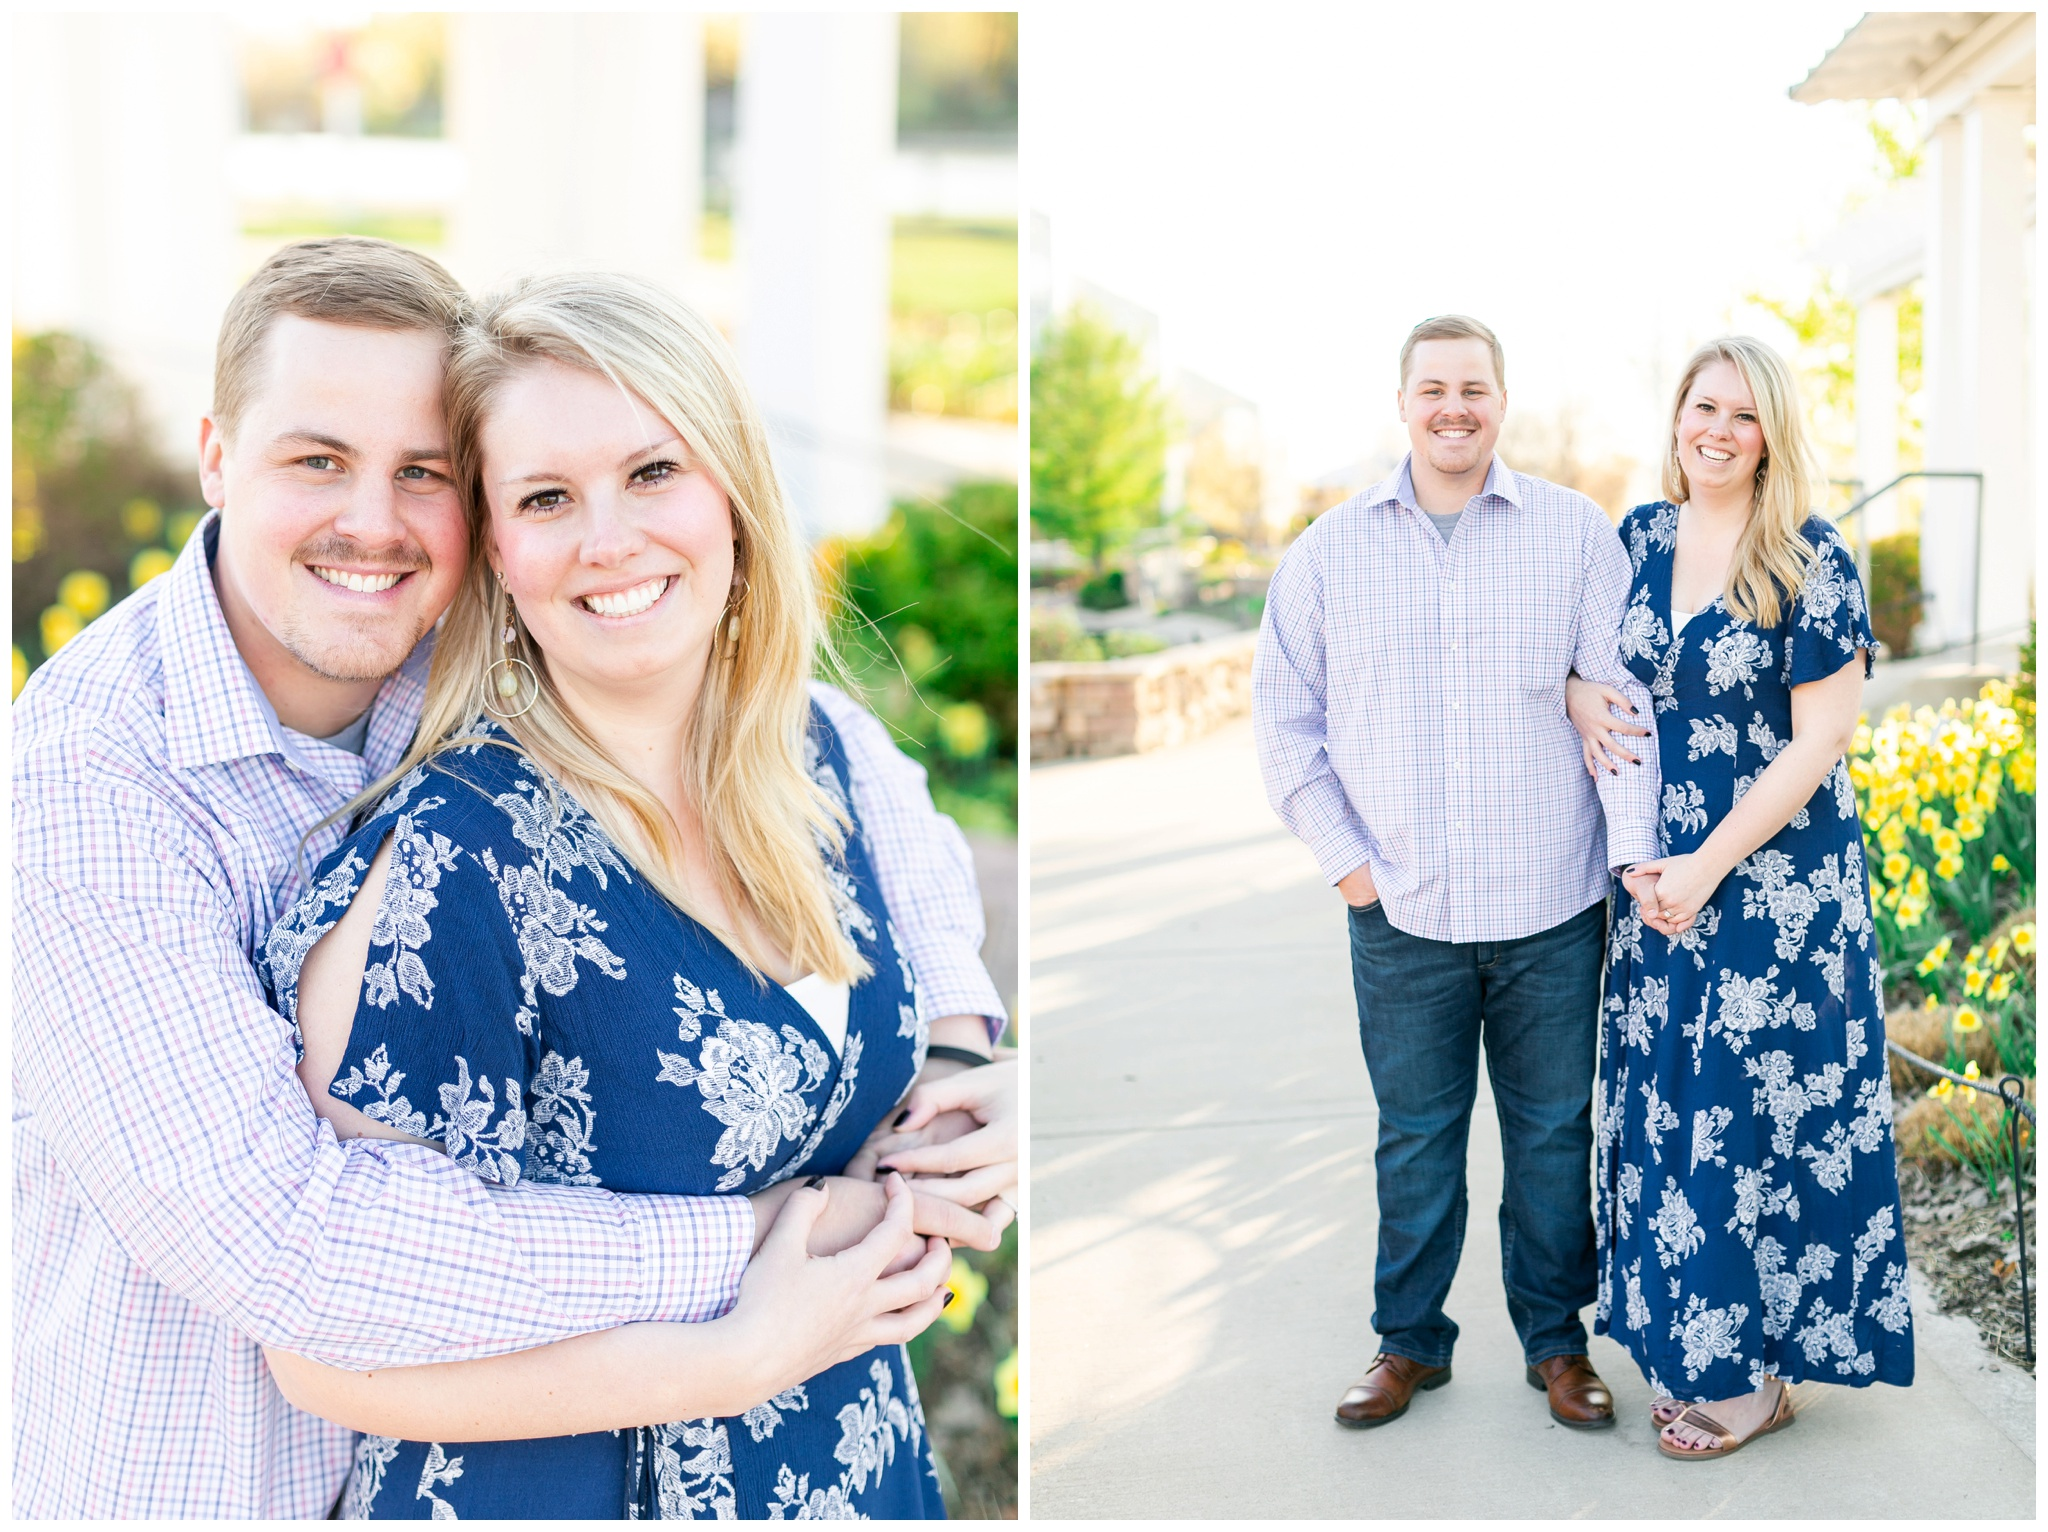 nicholas_conservatory_engagement_session_rockford_illinois_caynay_photo_2981.jpg